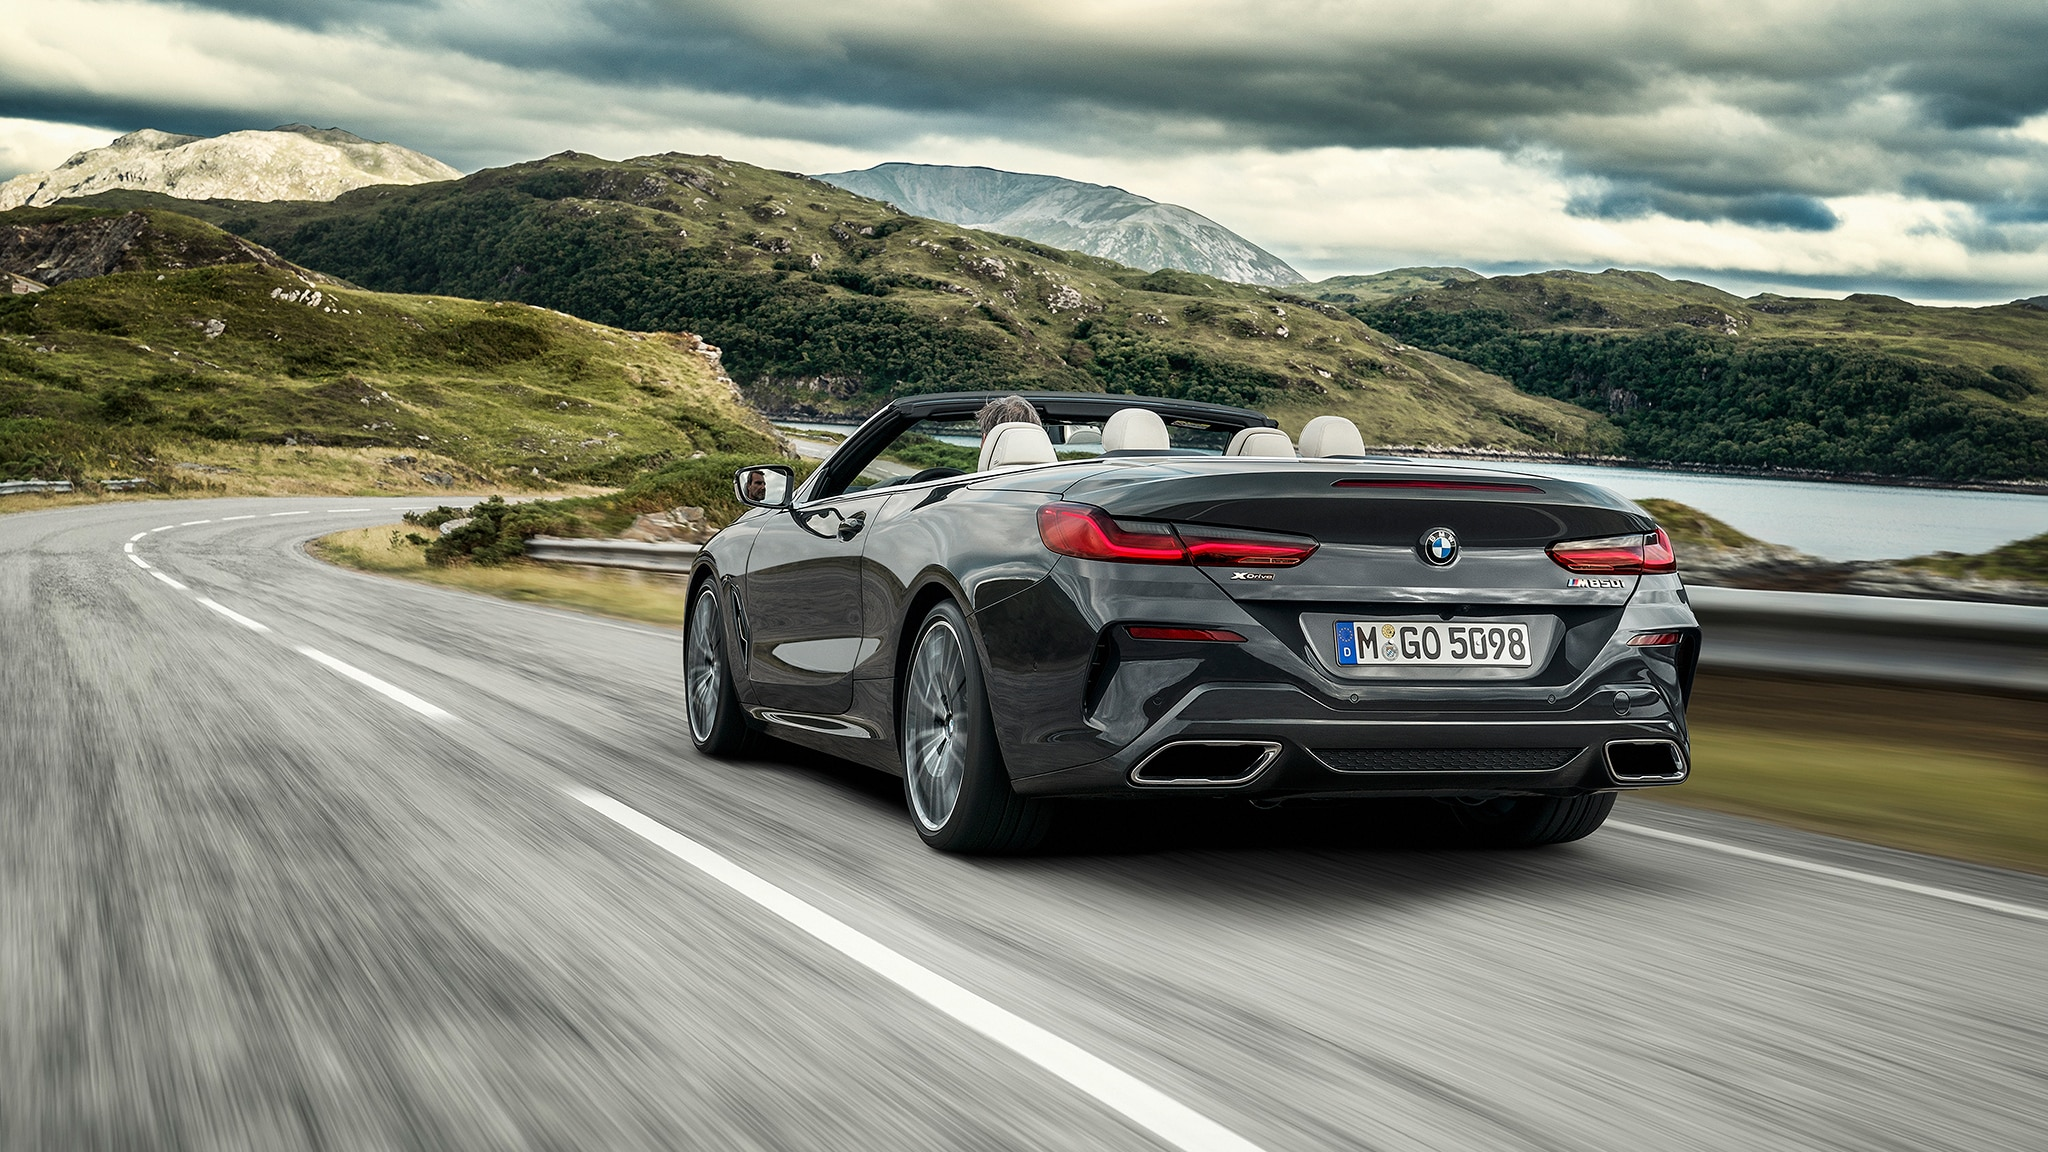 2019 BMW M850i Convertible Rear Side View Approaching Curve